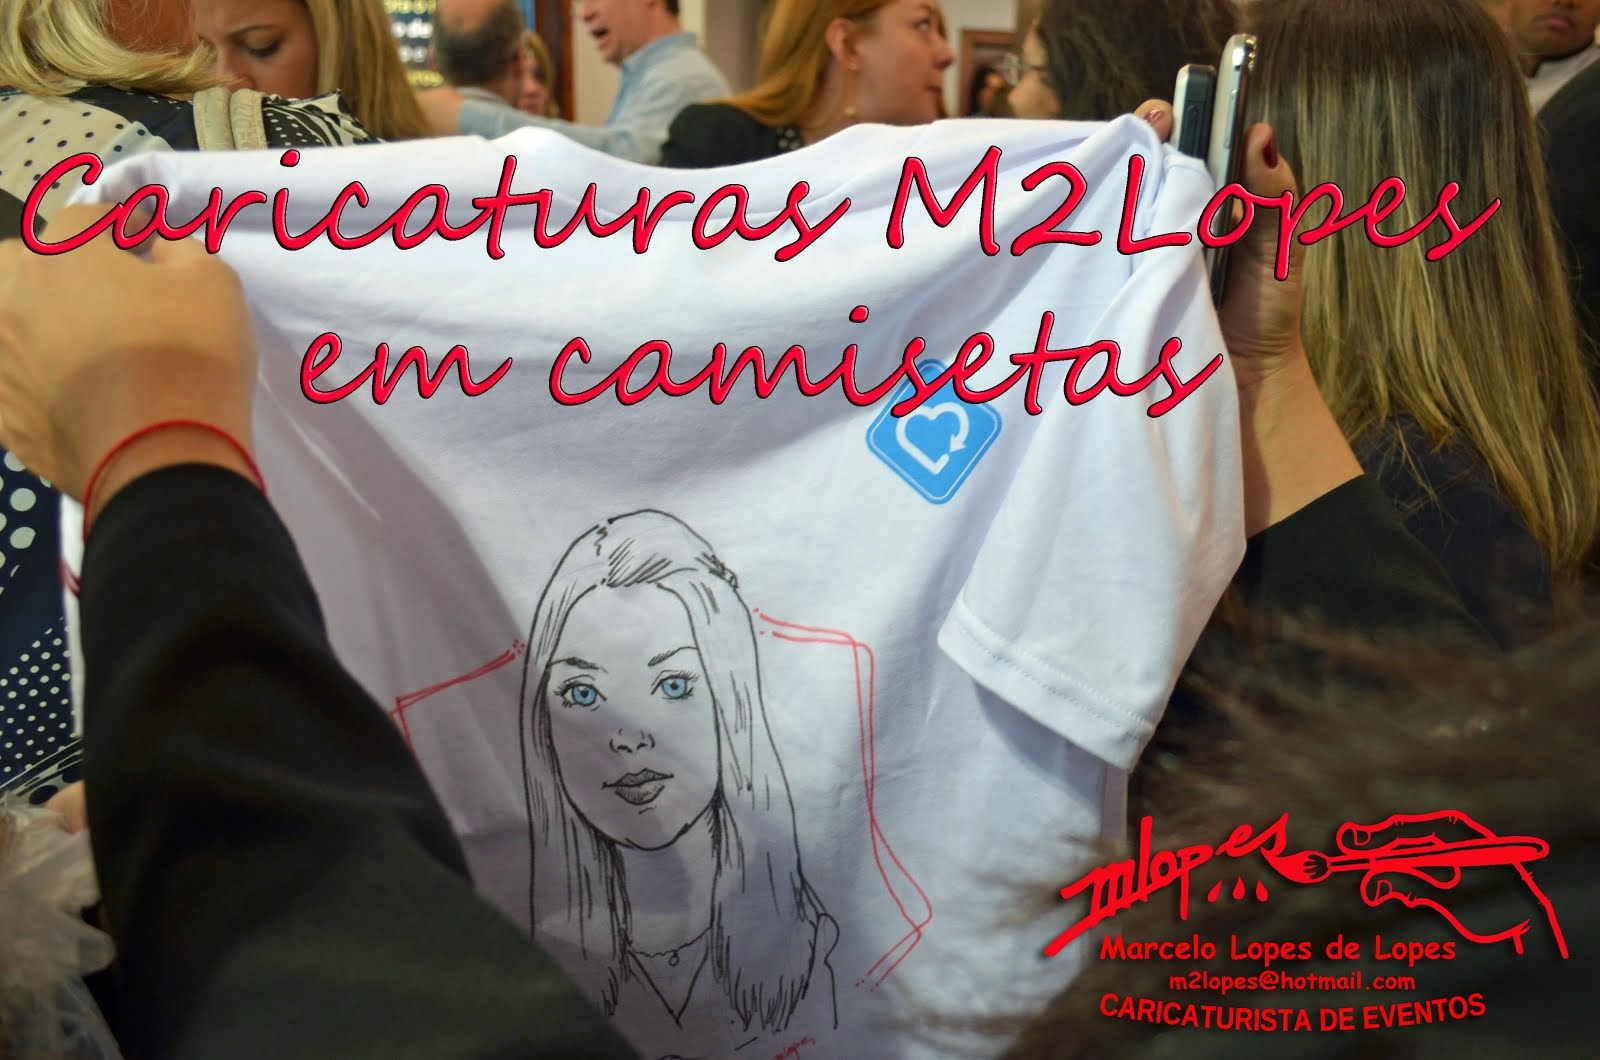 Caricaturas direto em camisetas